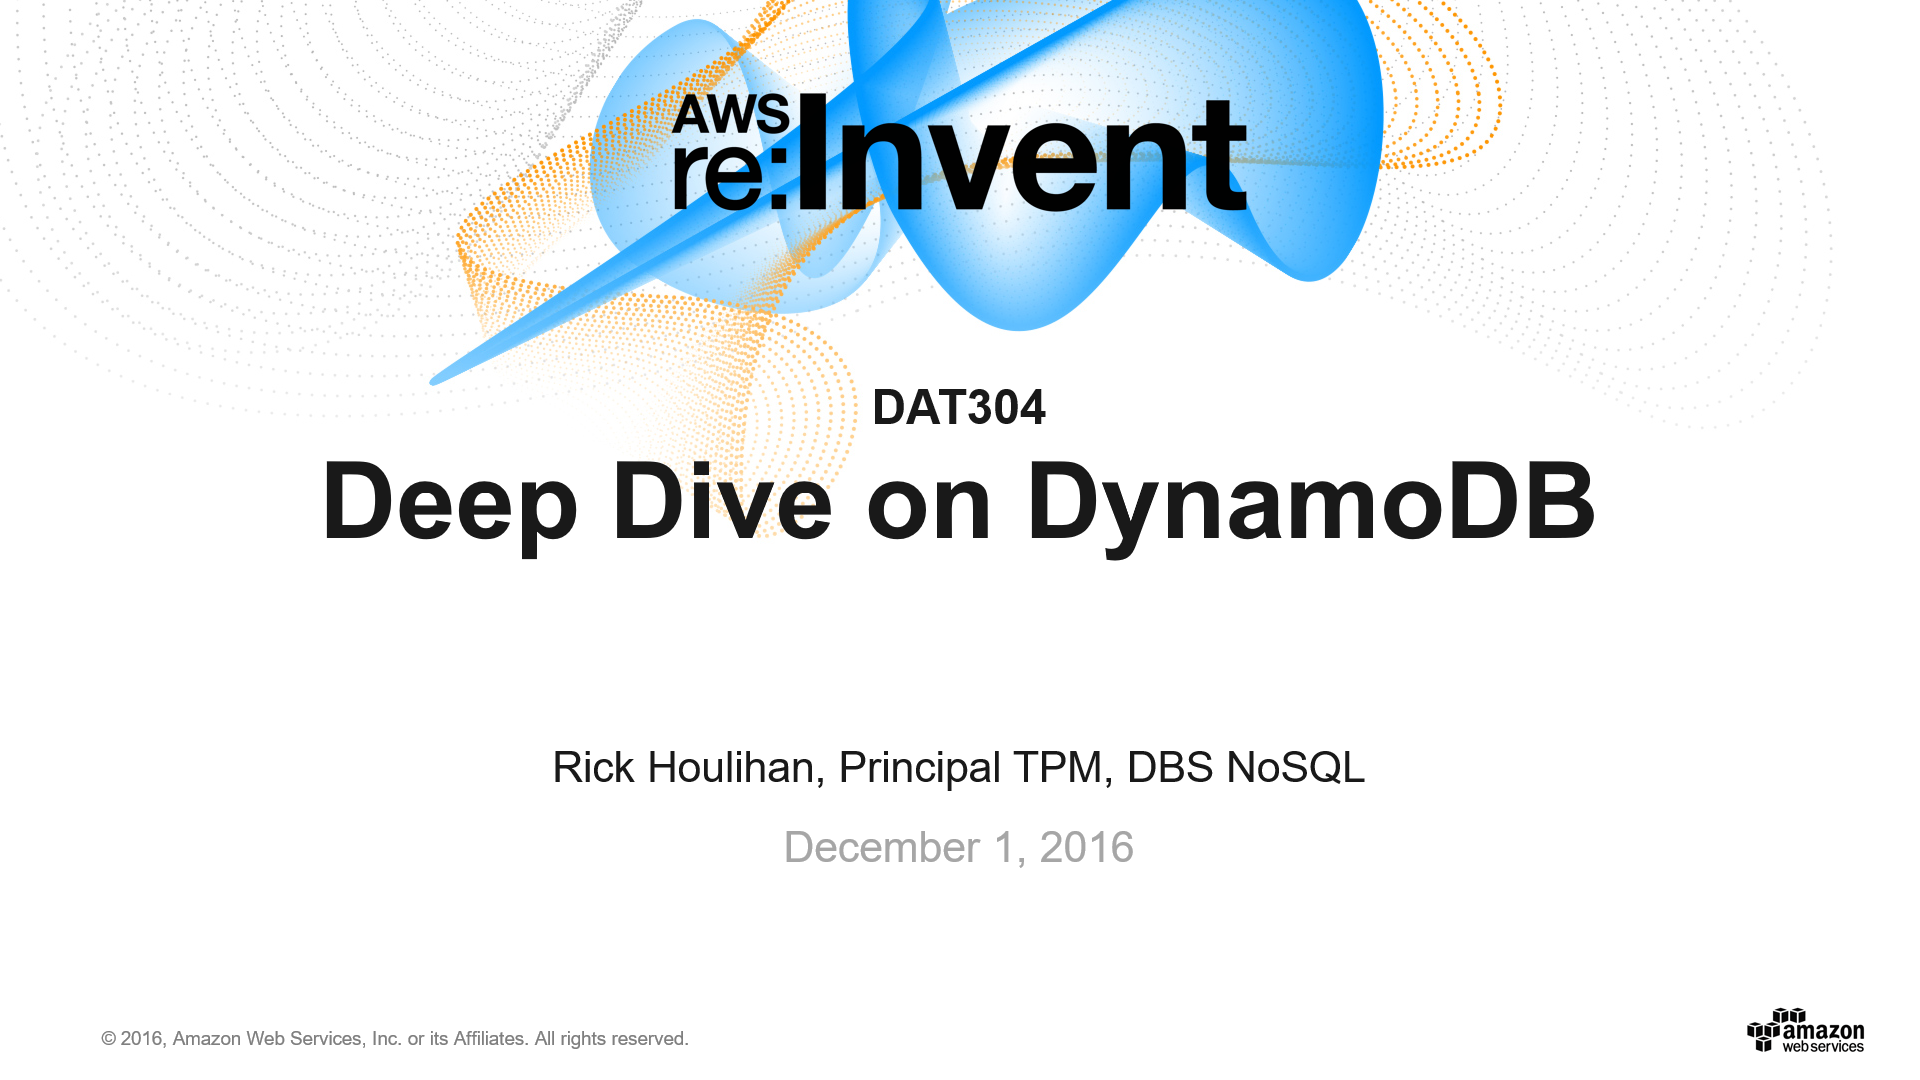 DAT304 Deep Dive on Amazon DynamoDB